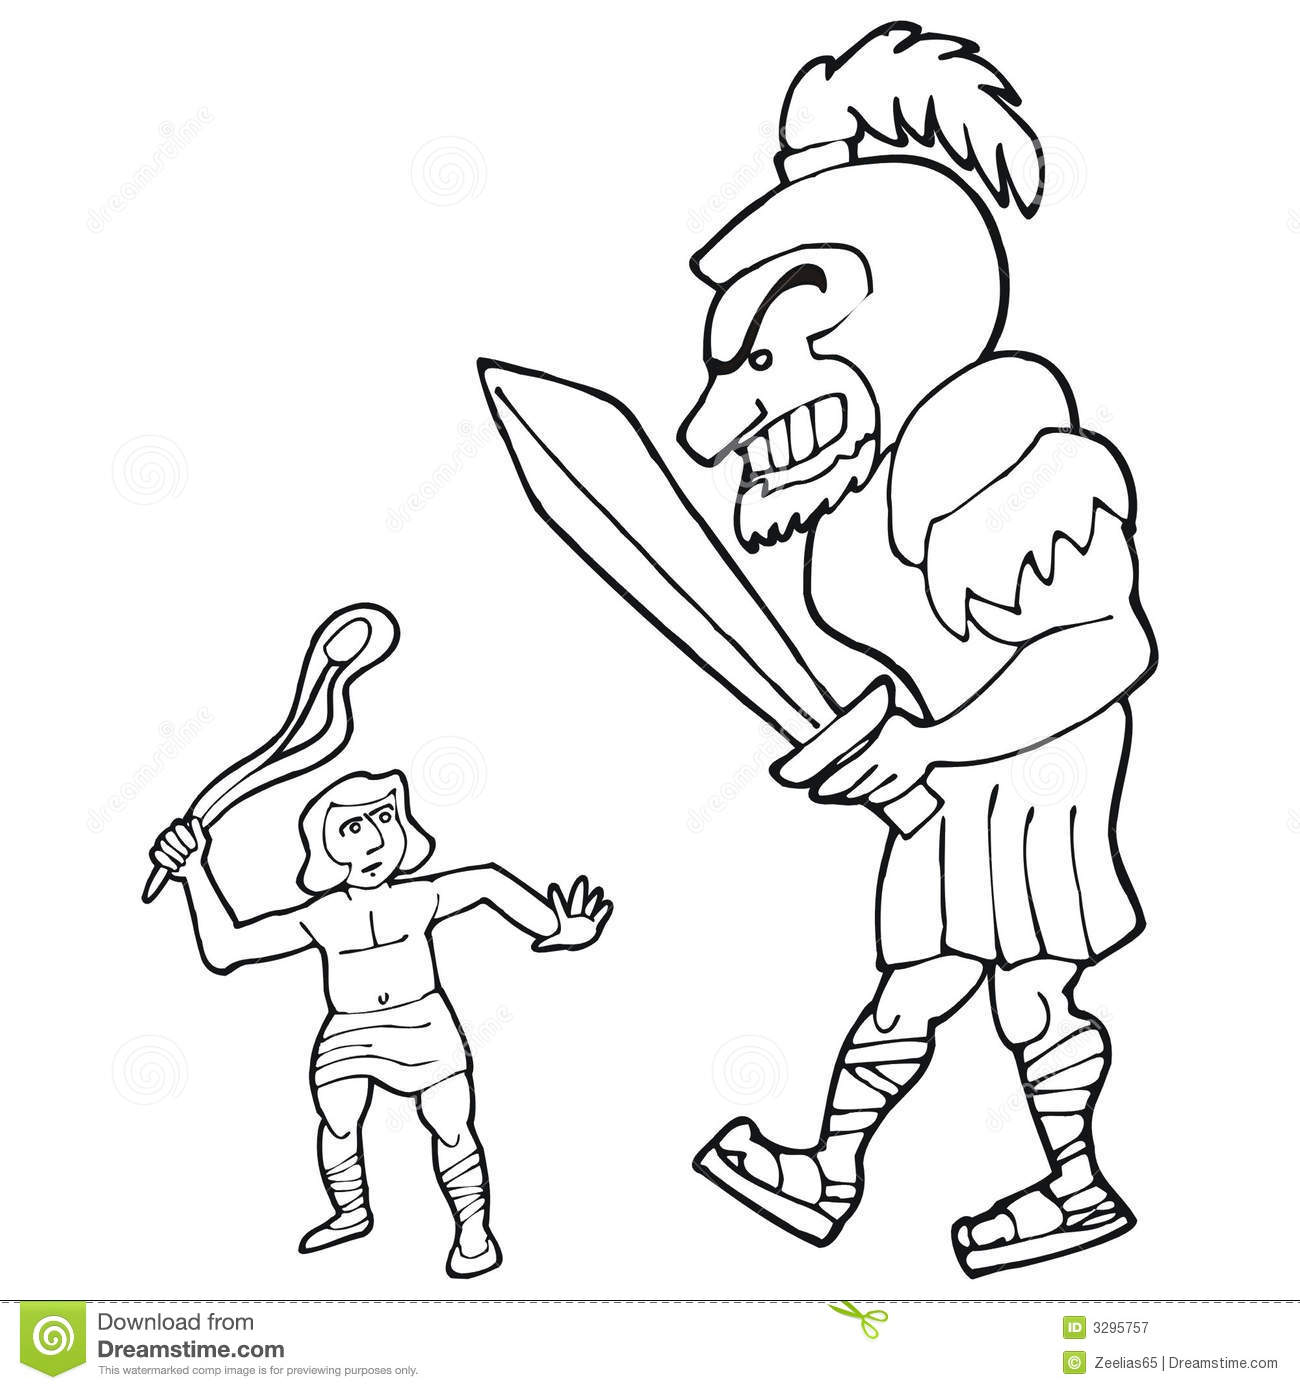 David and goliath stock vector